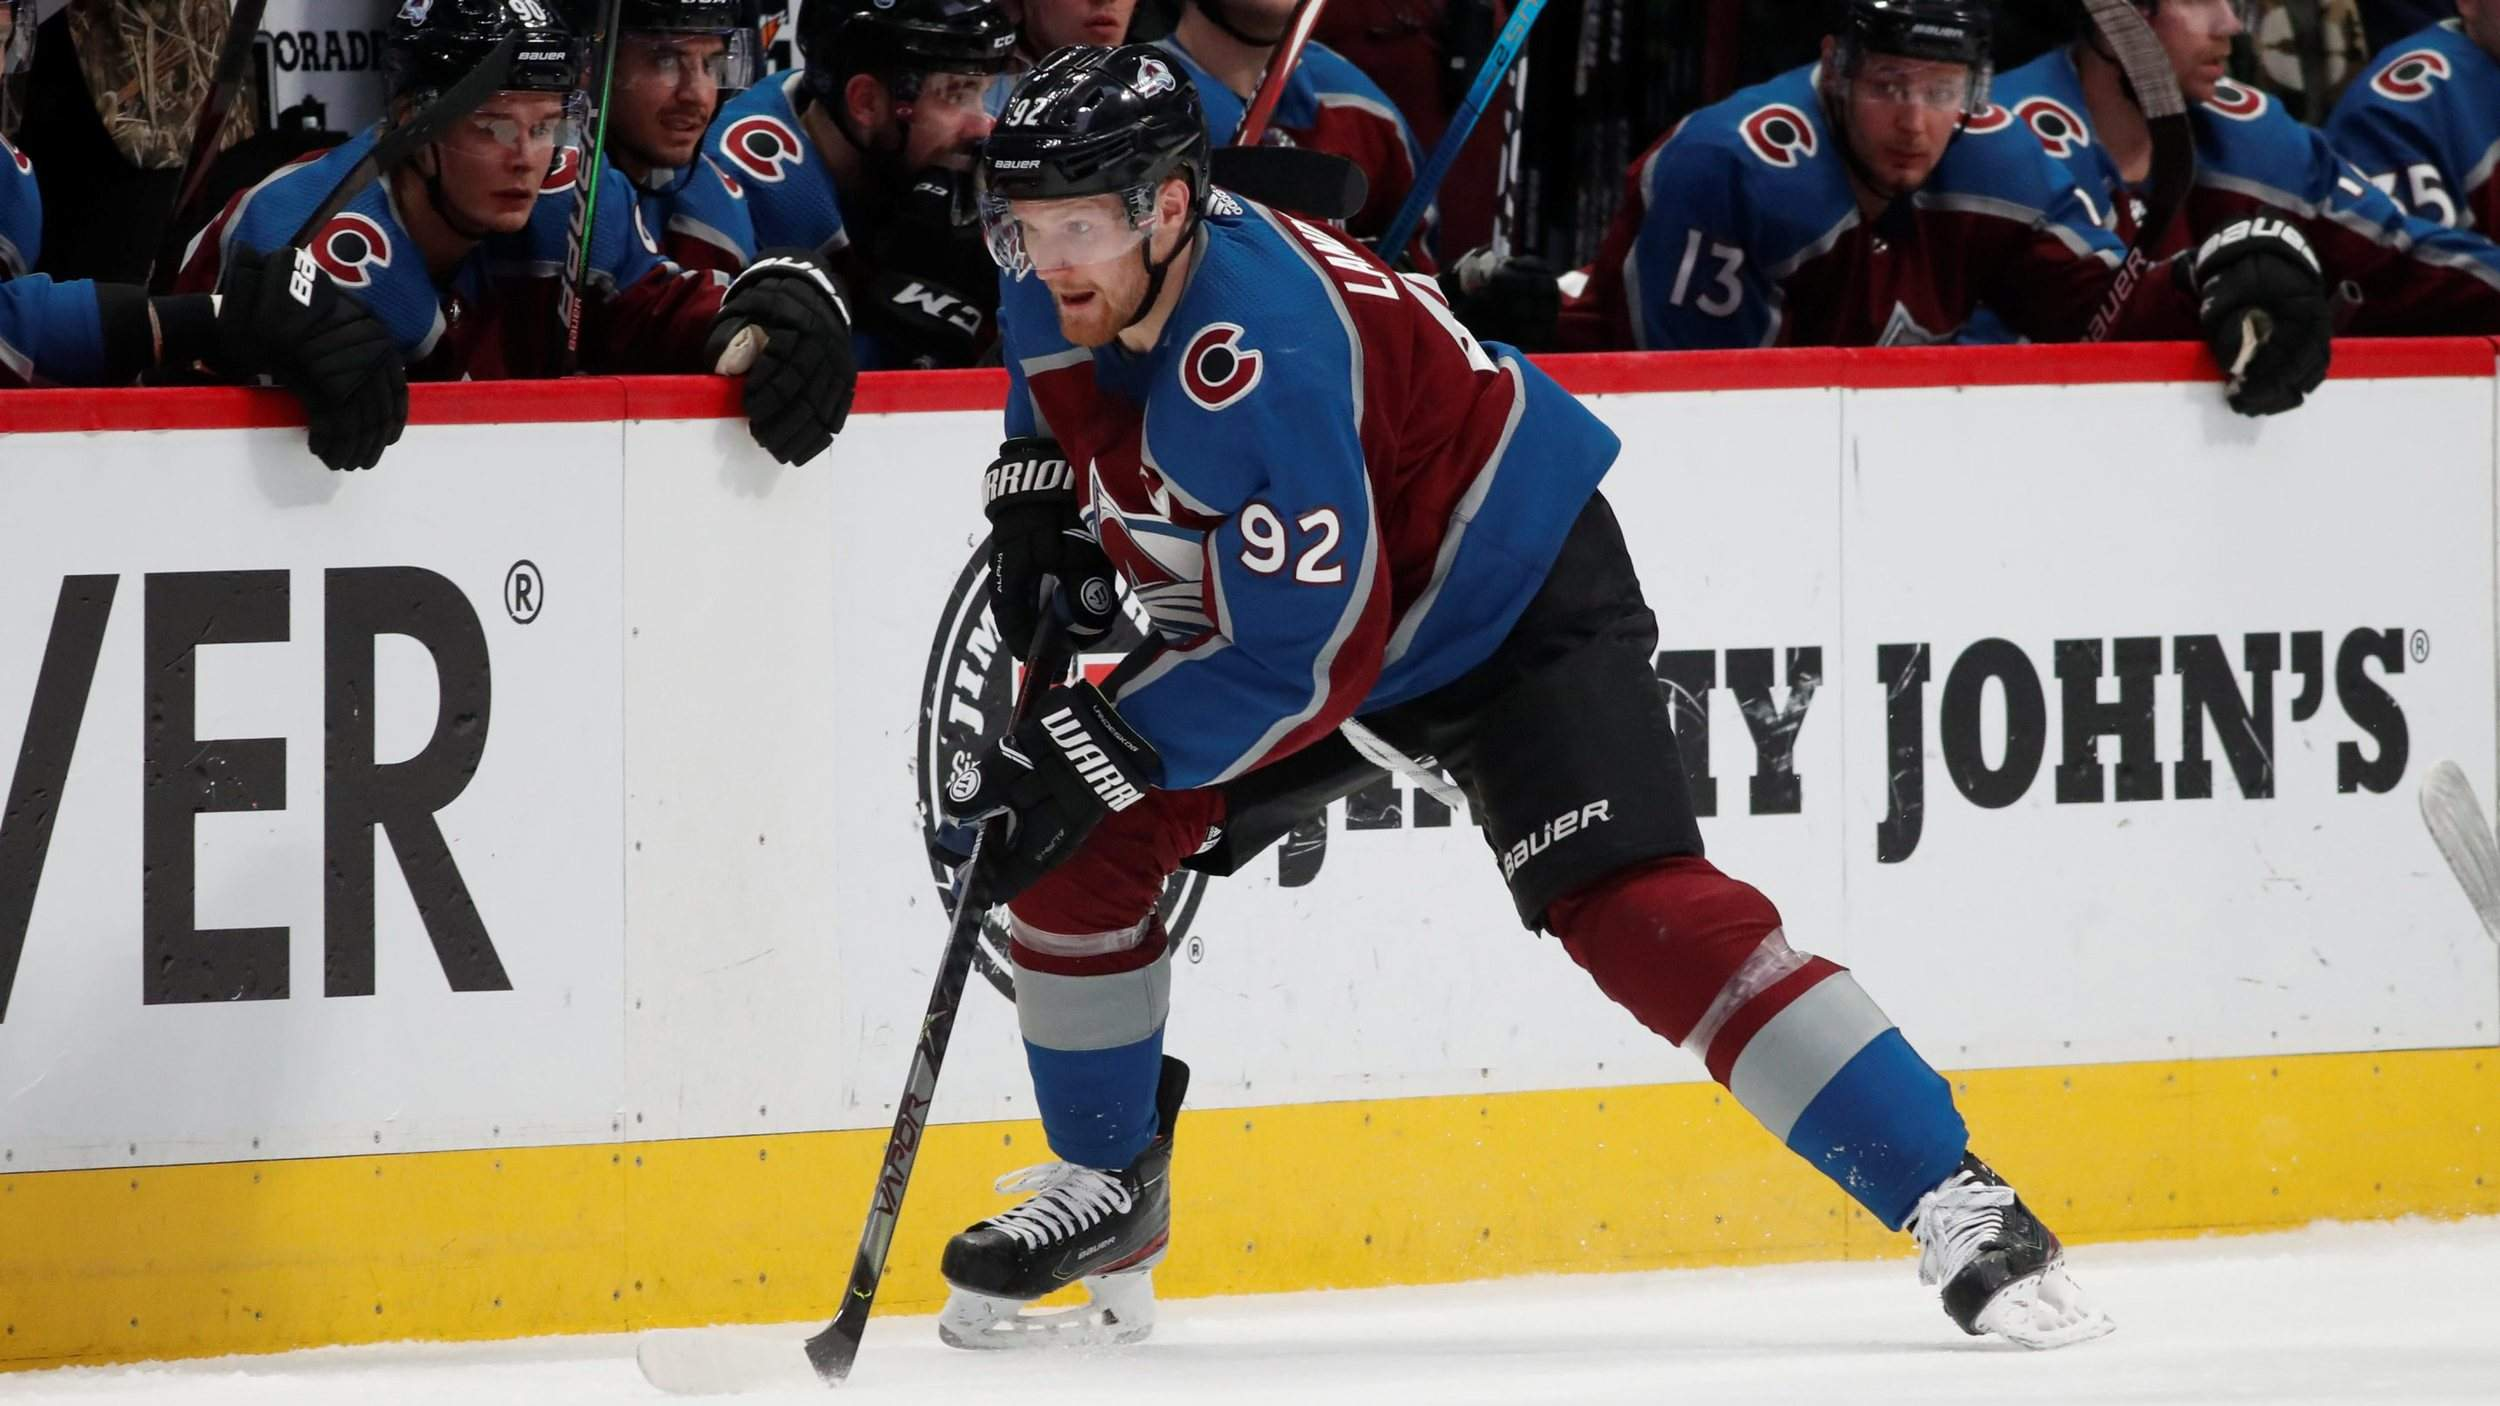 Colorado Avalanche will play in outdoor game on Lake Tahoe this season